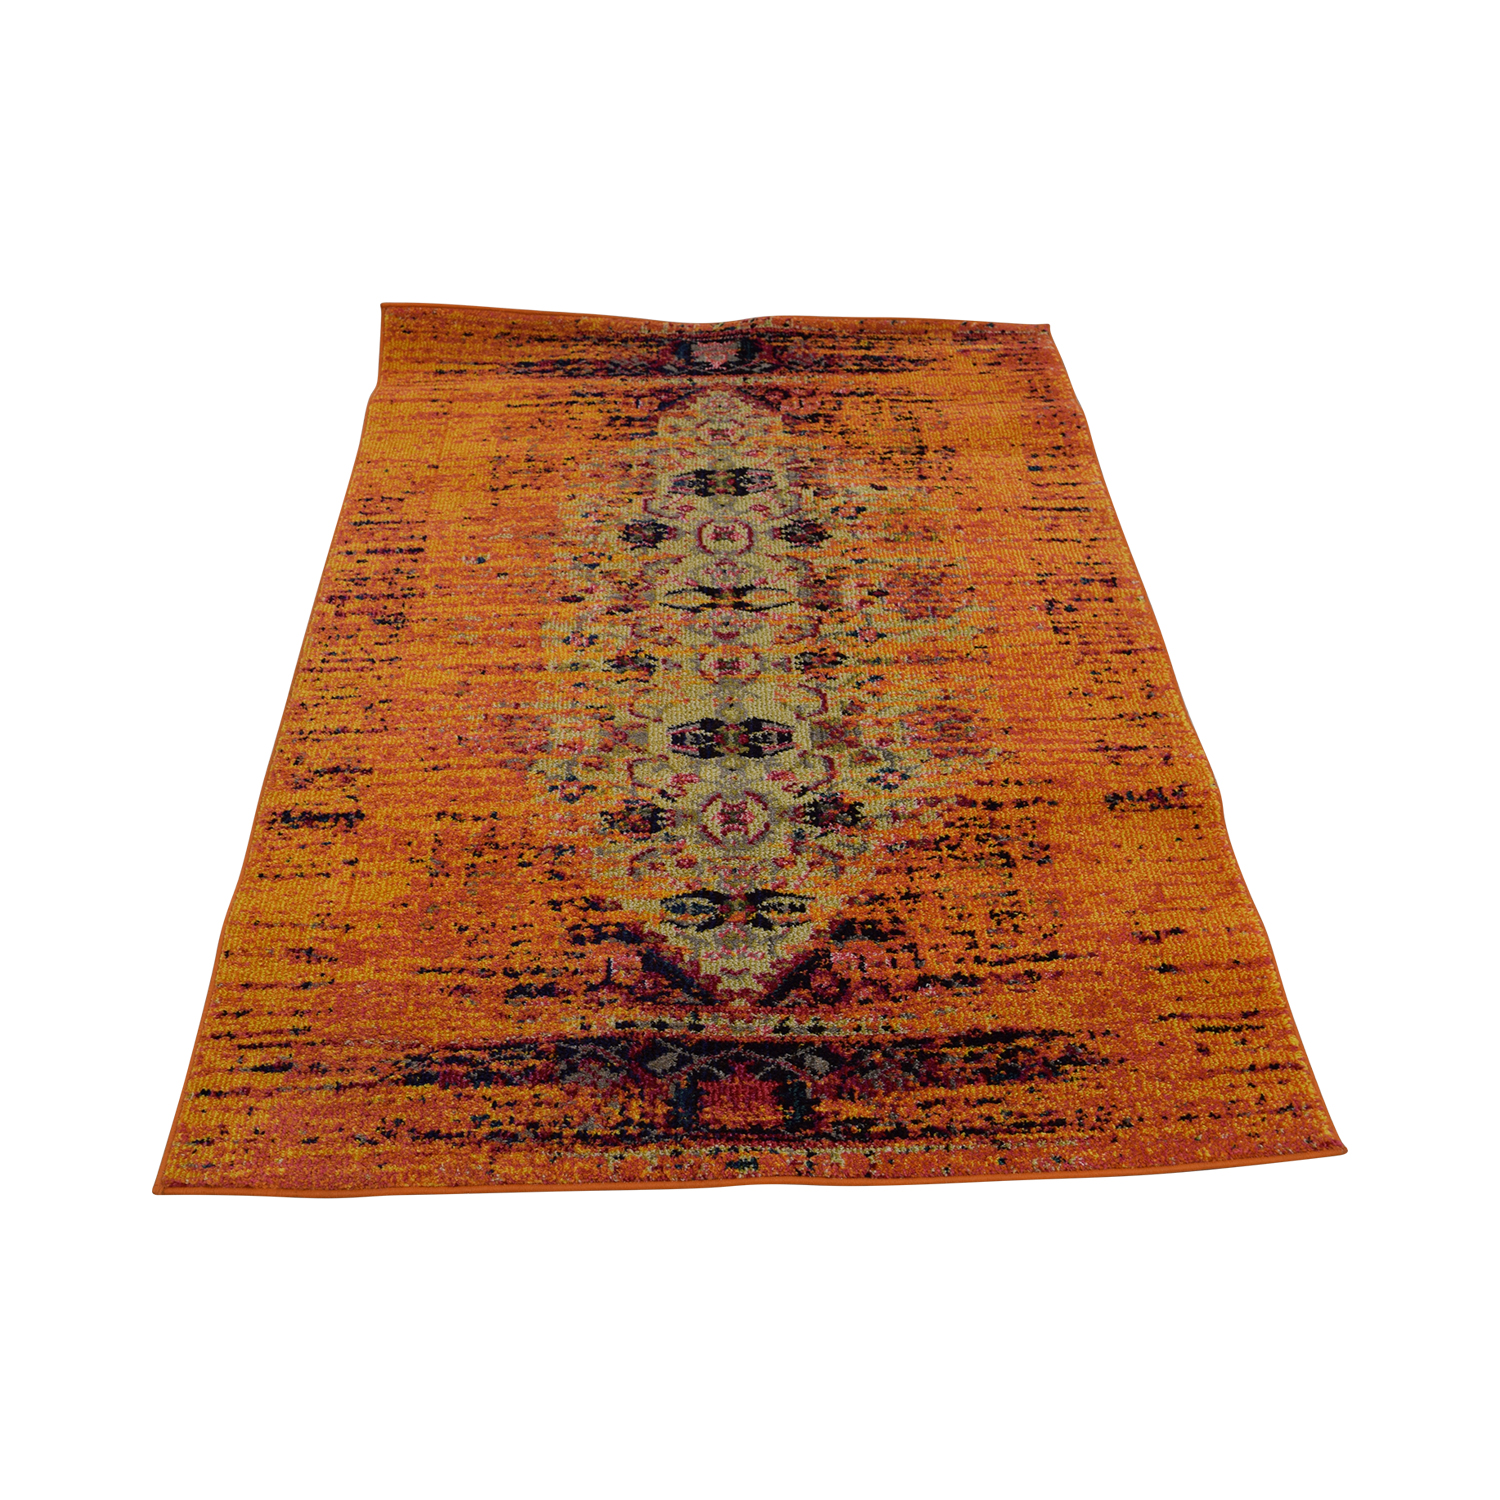 Safavieh Safavieh Vintage Distressed Orange Rug price